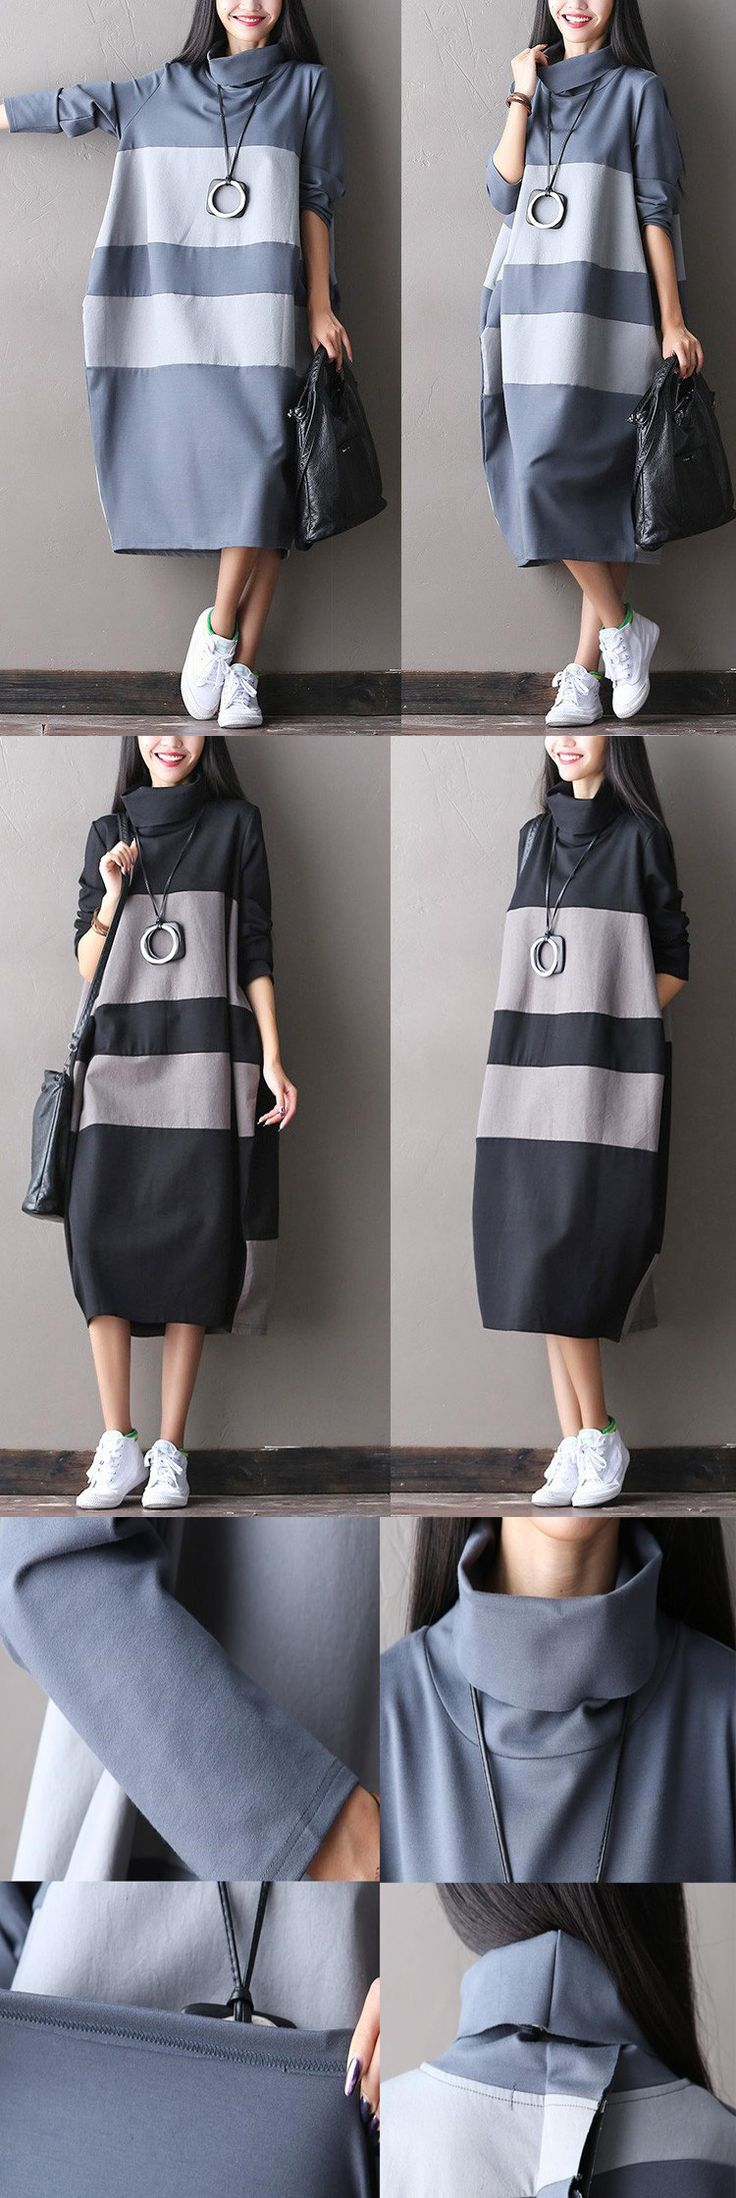 Big stripe long dress for autumn day.hand wash. buykud dresses. Women's Dresses - Dress for Women - http://amzn.to/2j7a1wP